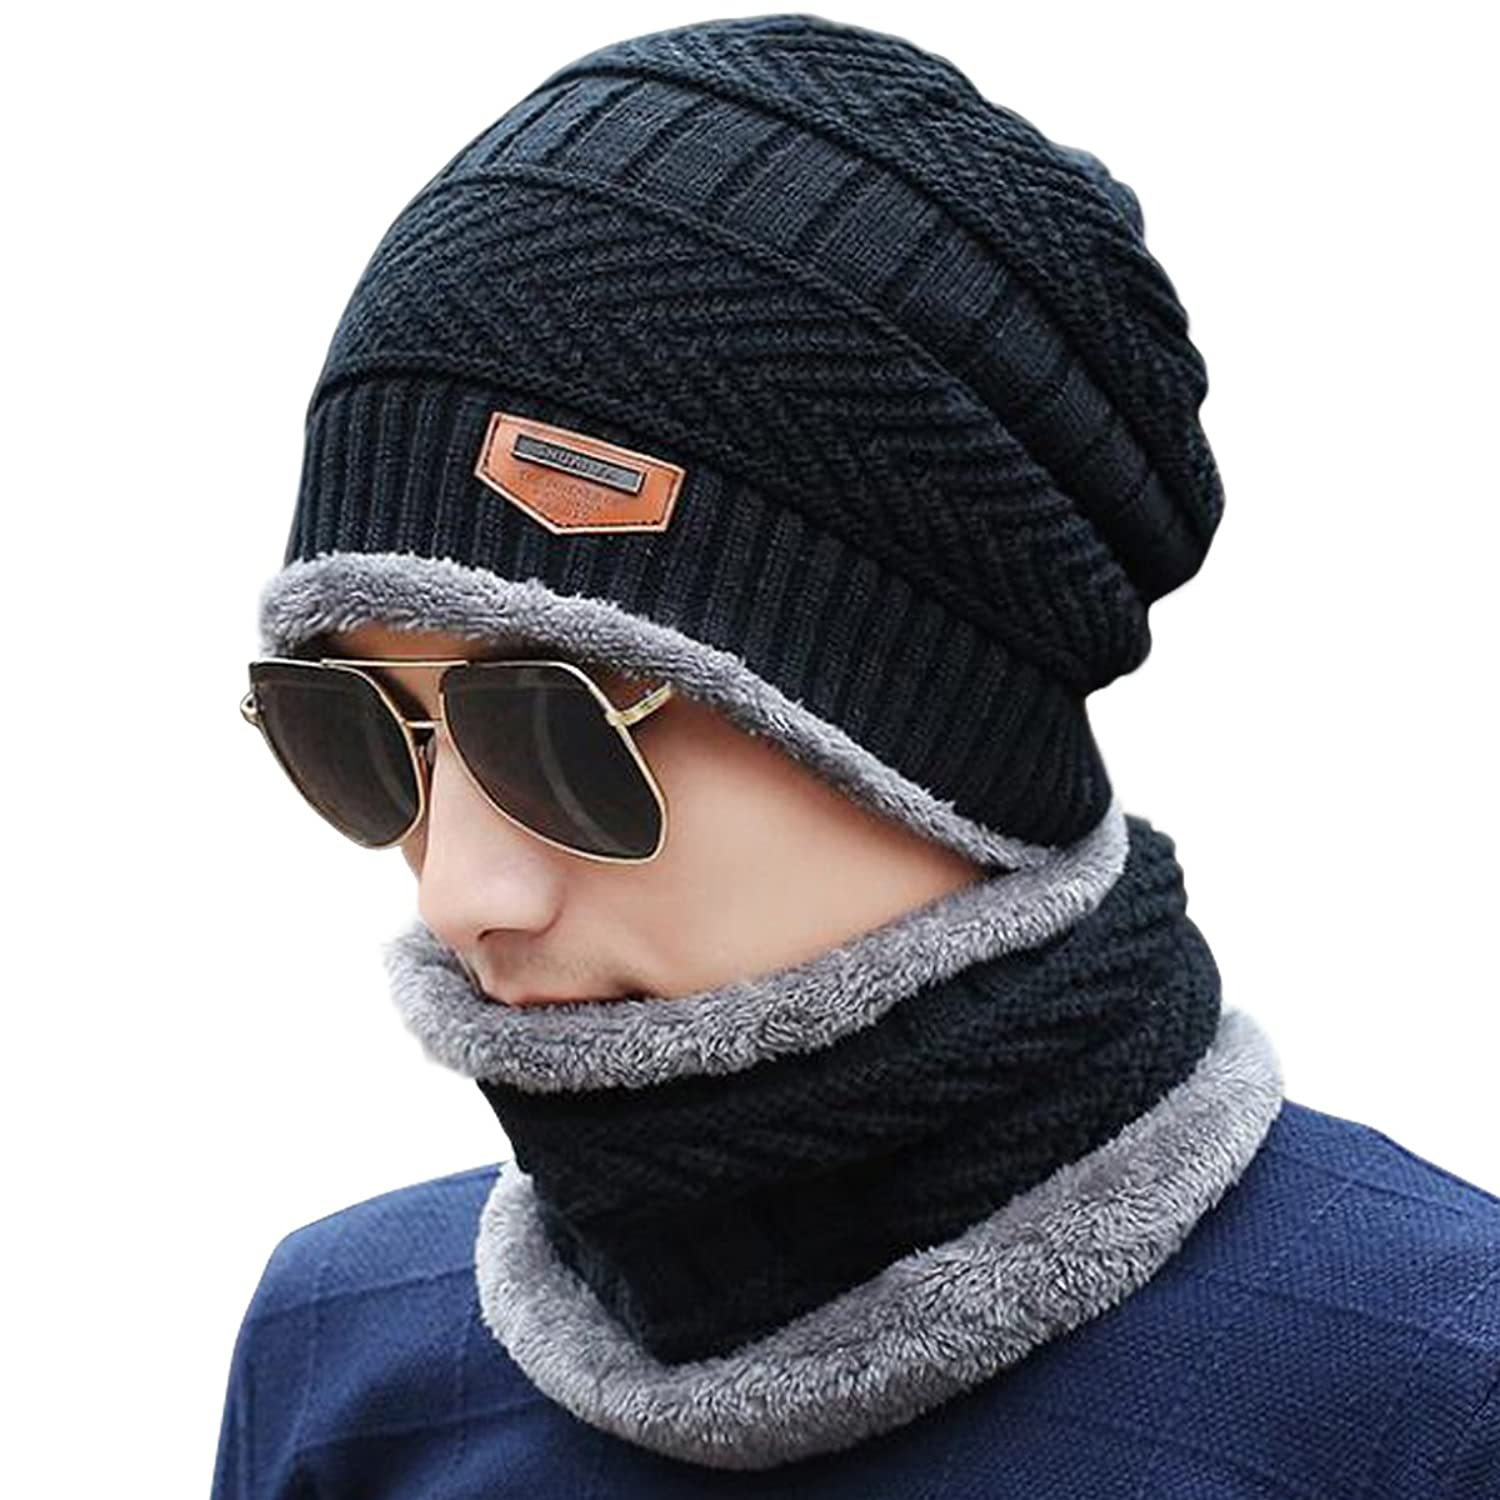 Top 10 wholesale Knit Beanie Hat - Chinabrands.com 13074282efb6